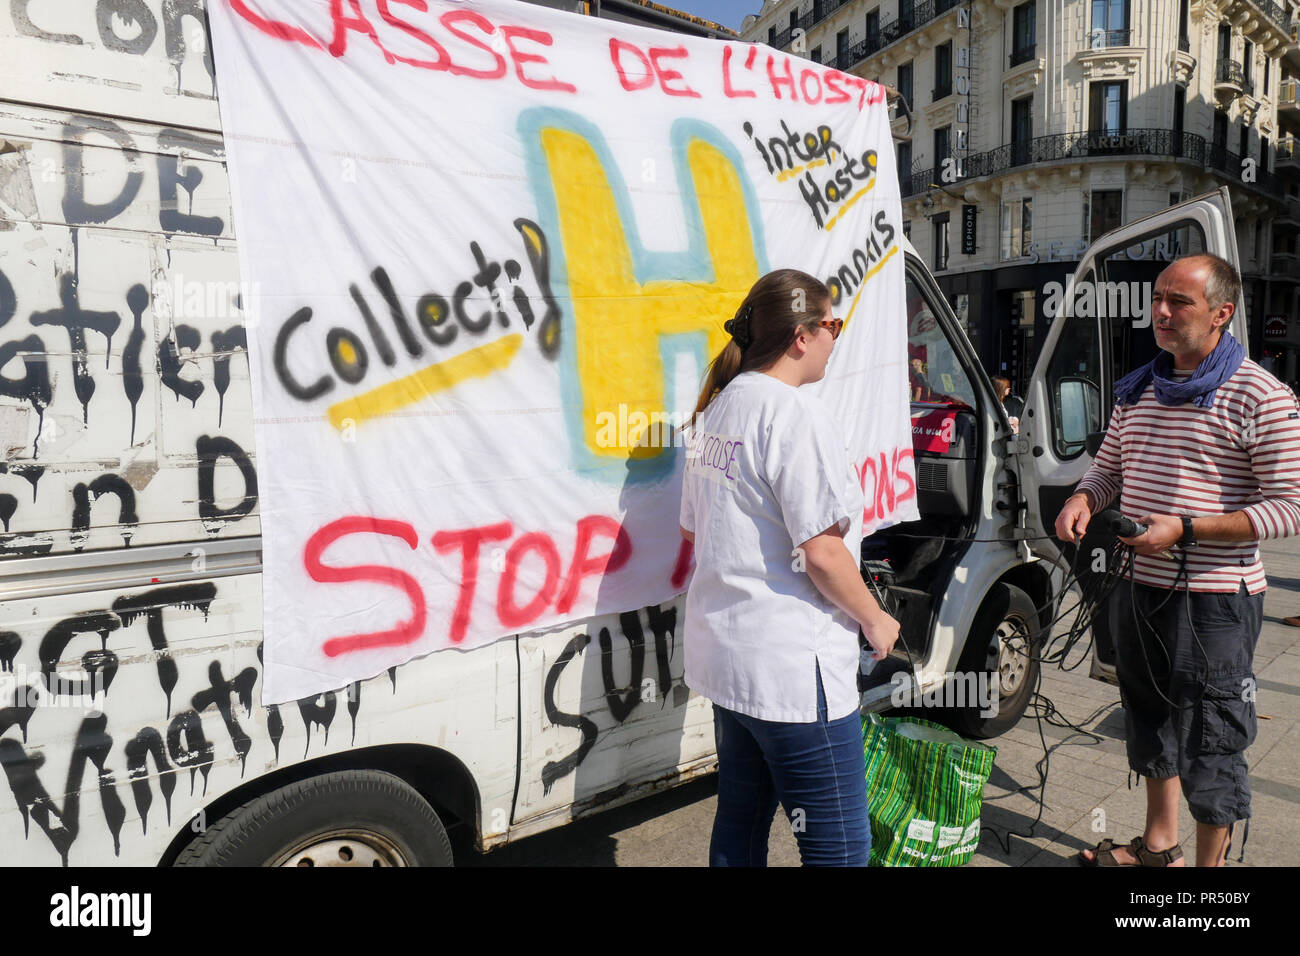 Lyon, France, September 29th, 2018: Called by H (for Hospital) collective, nursing personnel are seen in Lyon (Central-Eastern France) on september 29, 2018, as they take part to a happening organized at Republic square to  protest against disastrous condidered conditions of work in the public hospitals and claim against Prseident Macron and Health Minister Agnes Buzyn policy. On this occasion and to senstize passers by, several corpse bags were thrown into the water of Republic foutain, as a symbol of Public Health Service wreckage. Credit Photo: Serge Mouraret/Alamy Live News Stock Photo